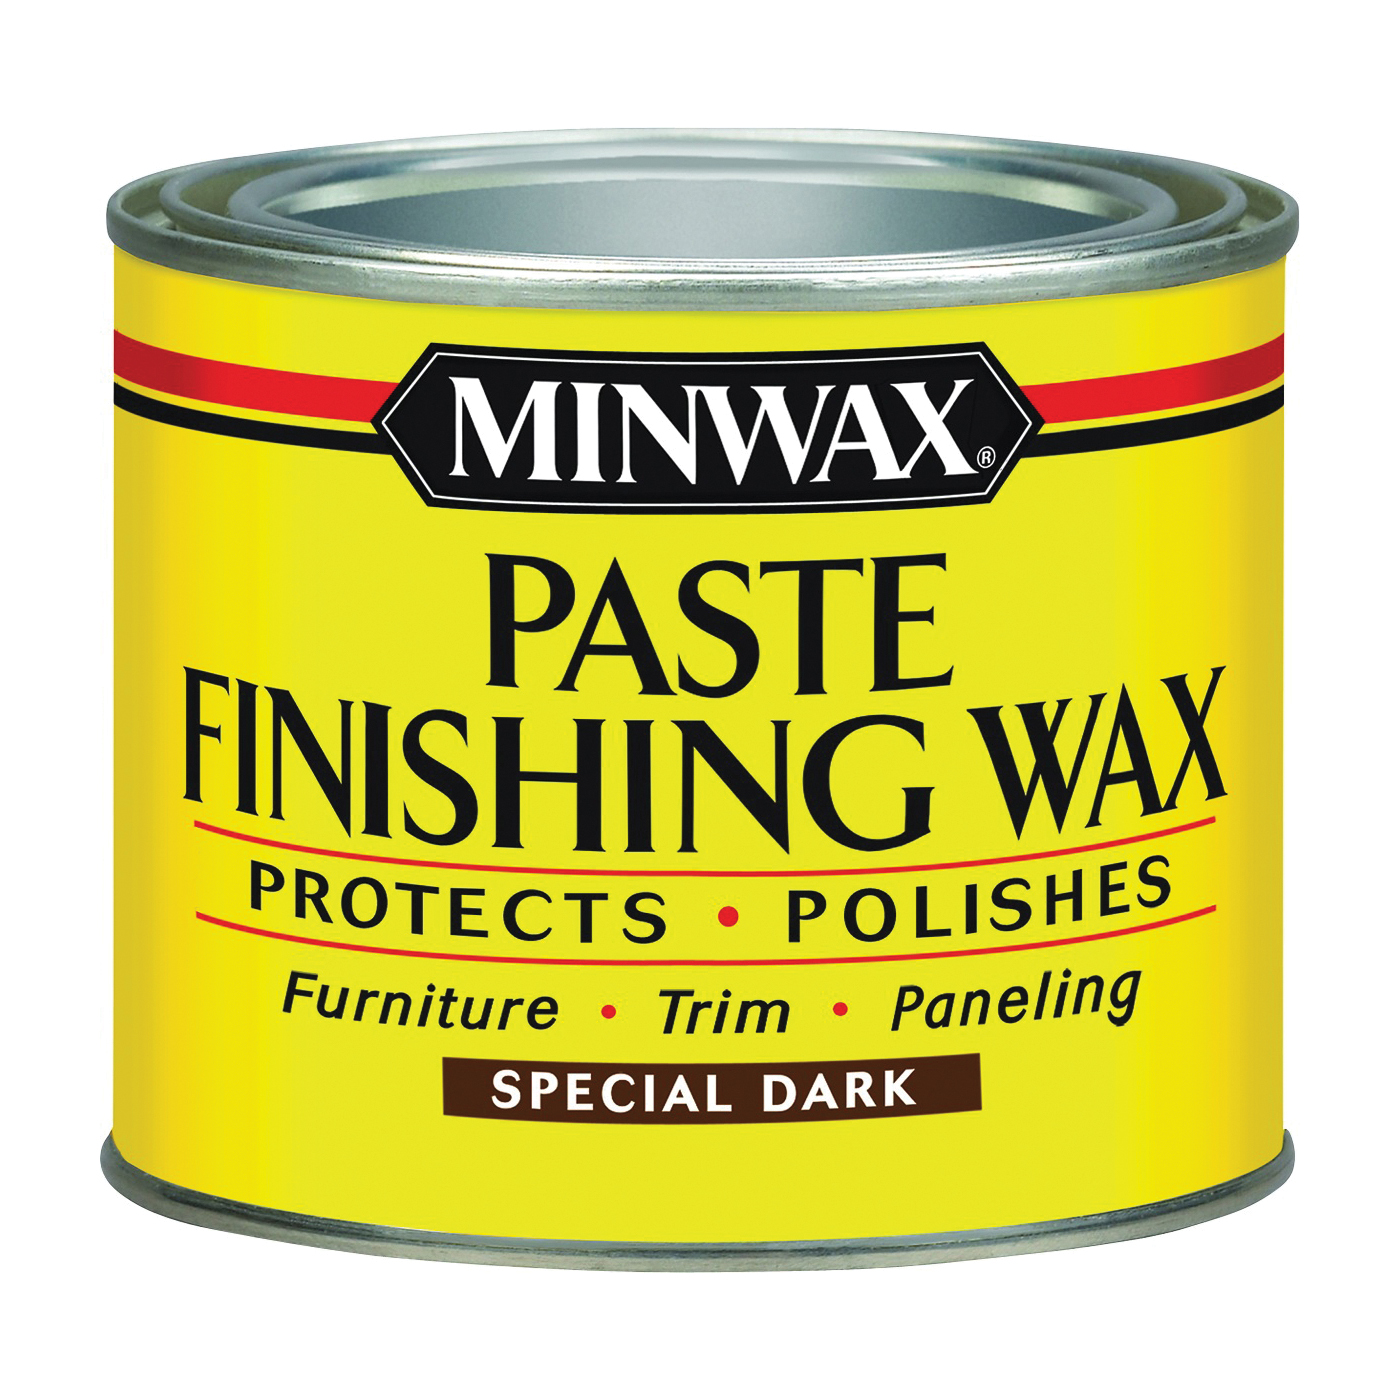 Picture of Minwax 786004444 Finishing Wax, Special Dark, Paste, 1 lb, Can